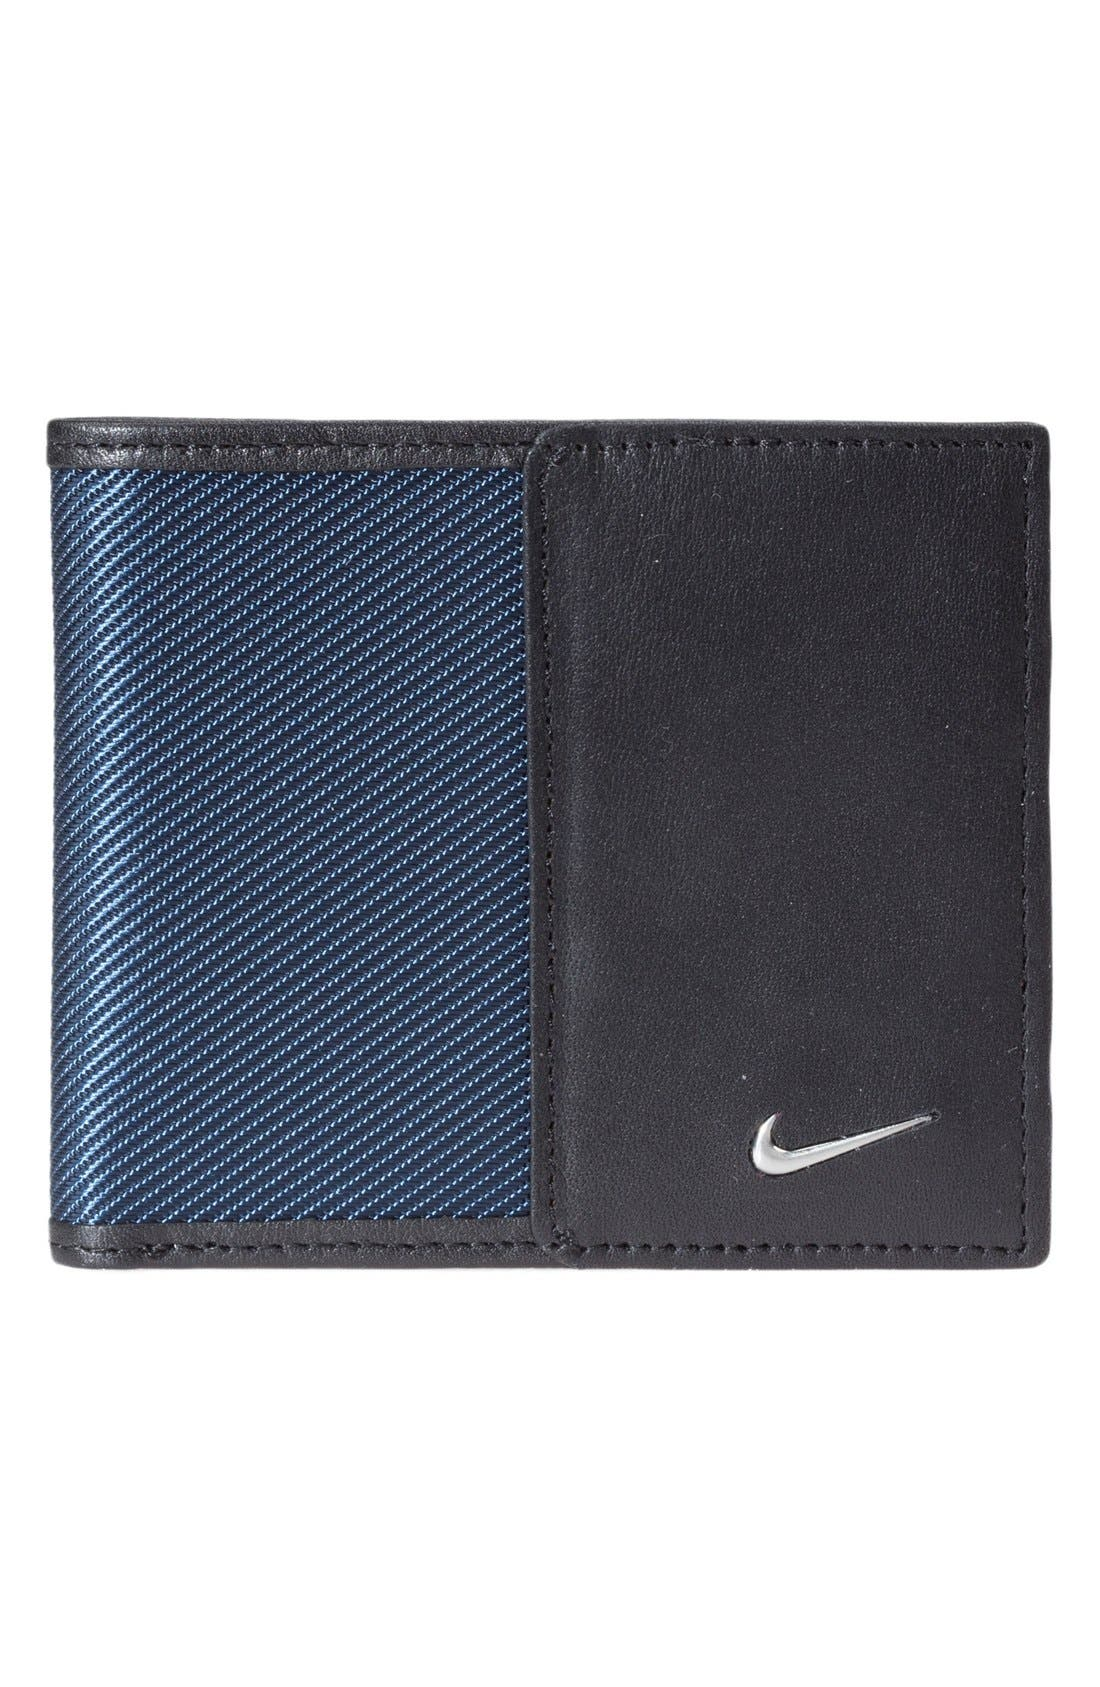 Alternate Image 1 Selected - Nike Tech Twill Wallet